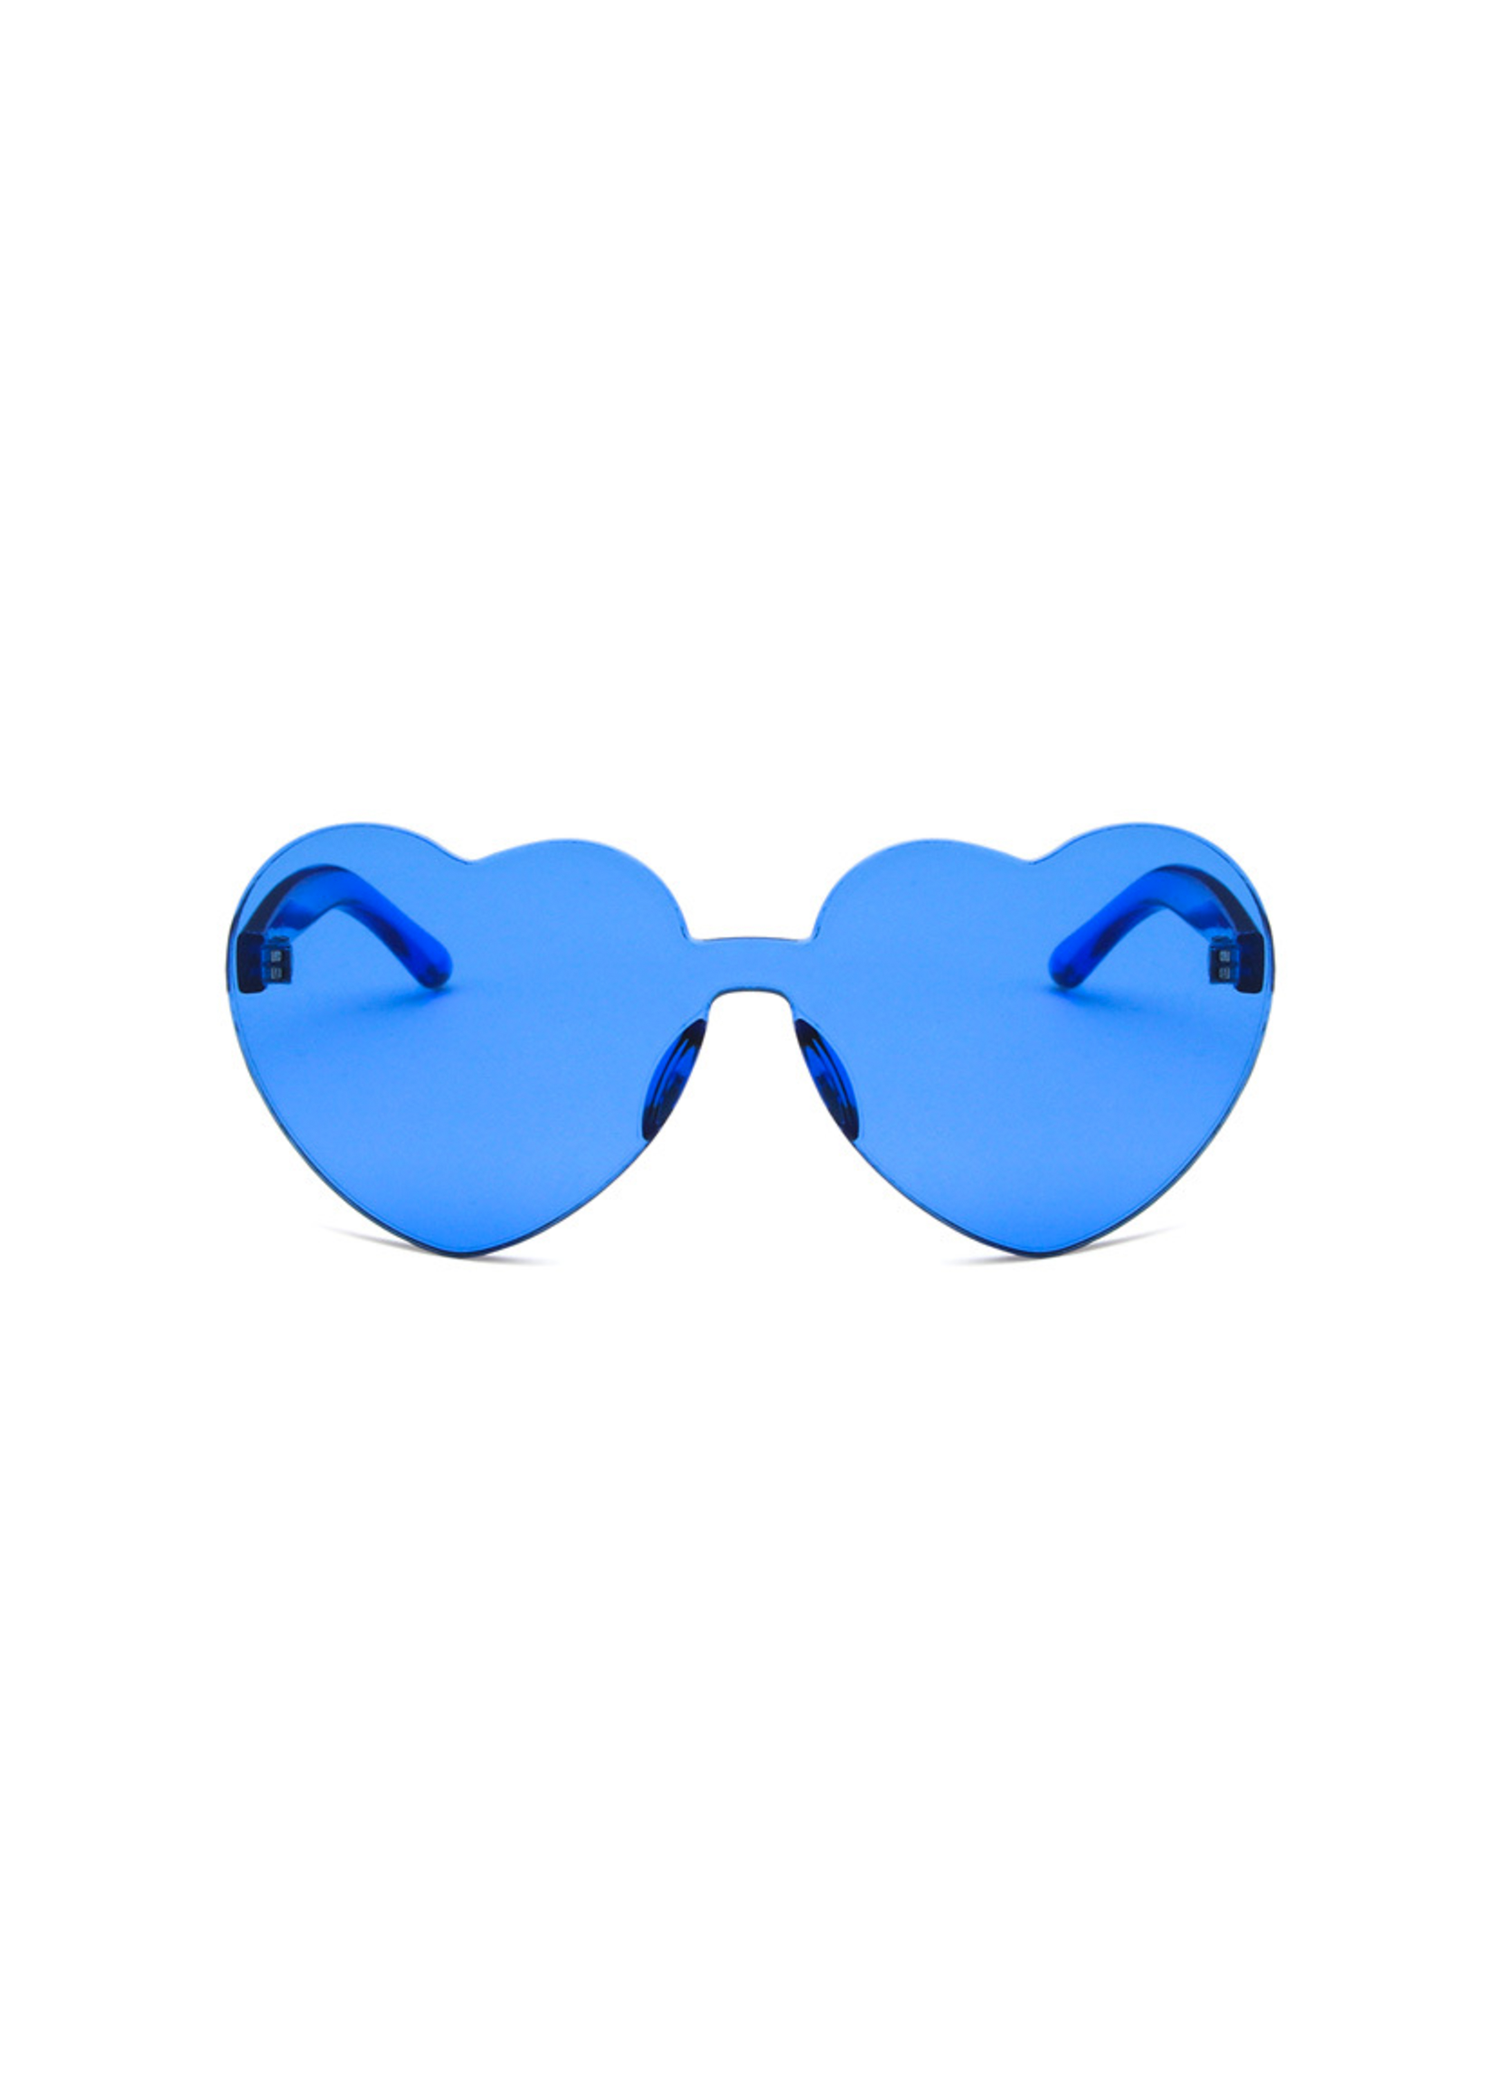 heart eye glasses in royal blue